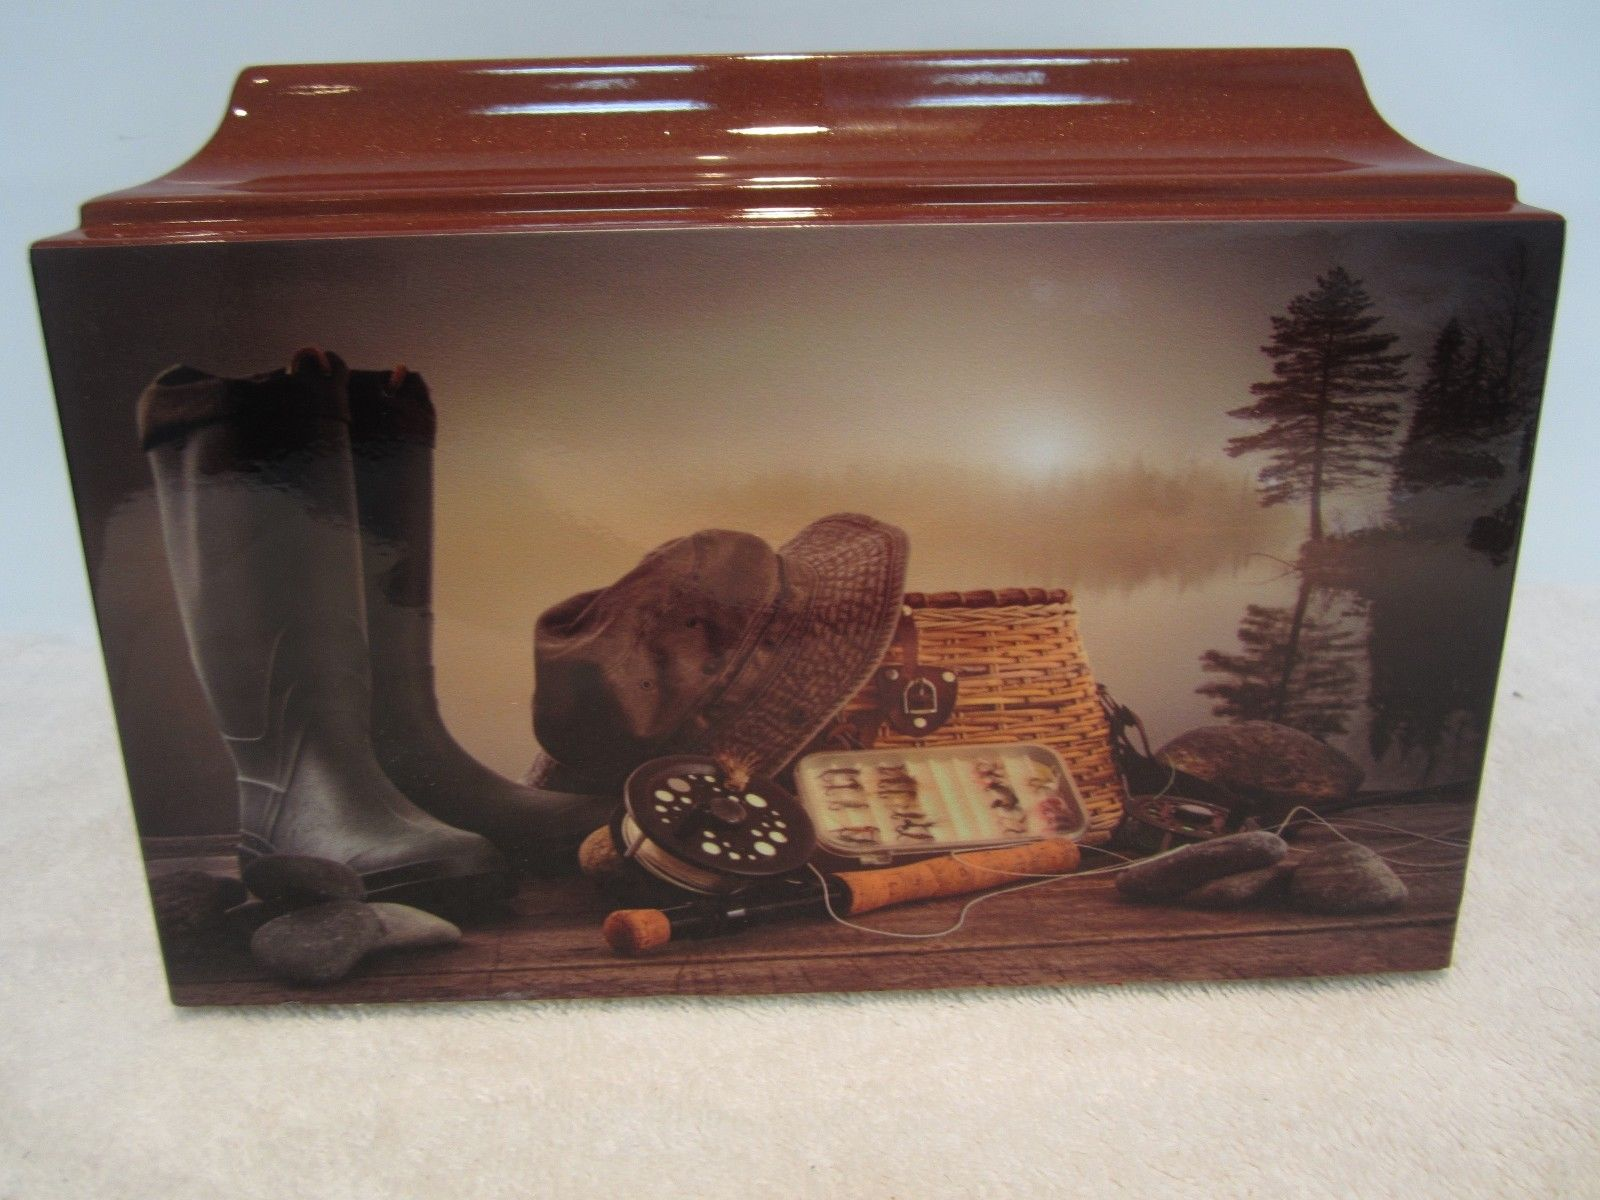 videos-adult-teddy-bear-cremation-urns-shaved